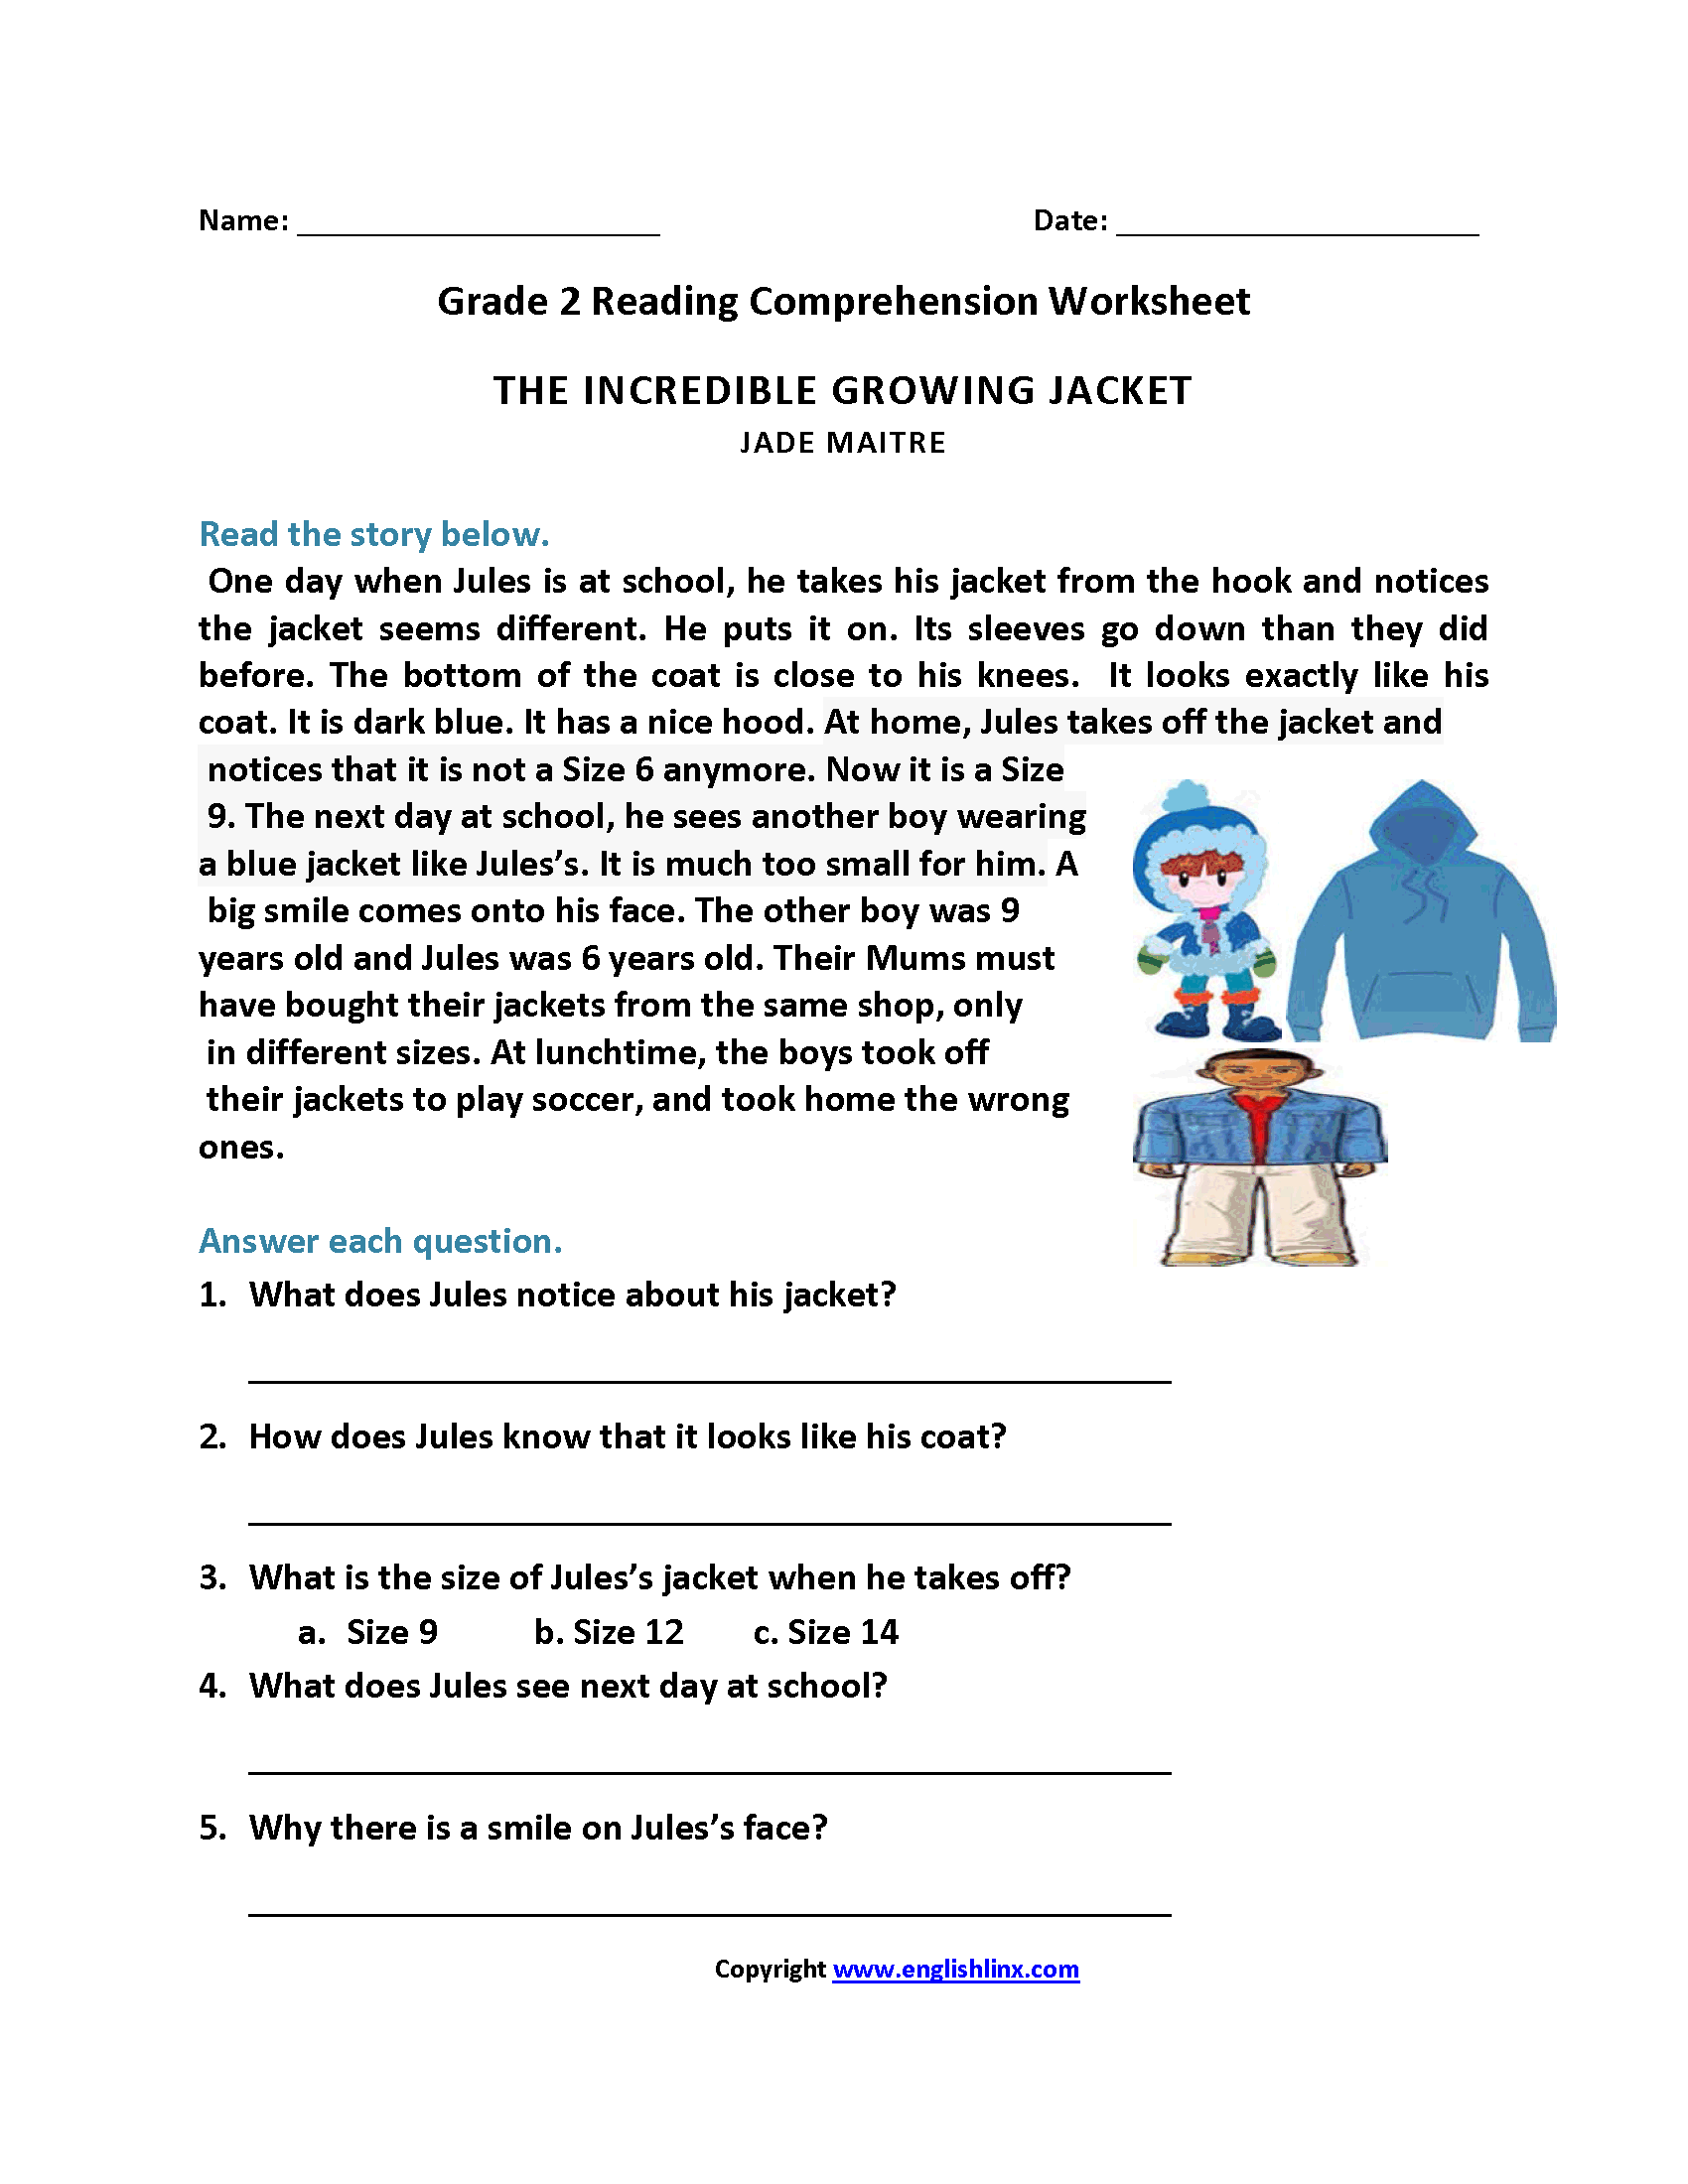 Incredible Growing Jacket Second Grade Reading Worksheets